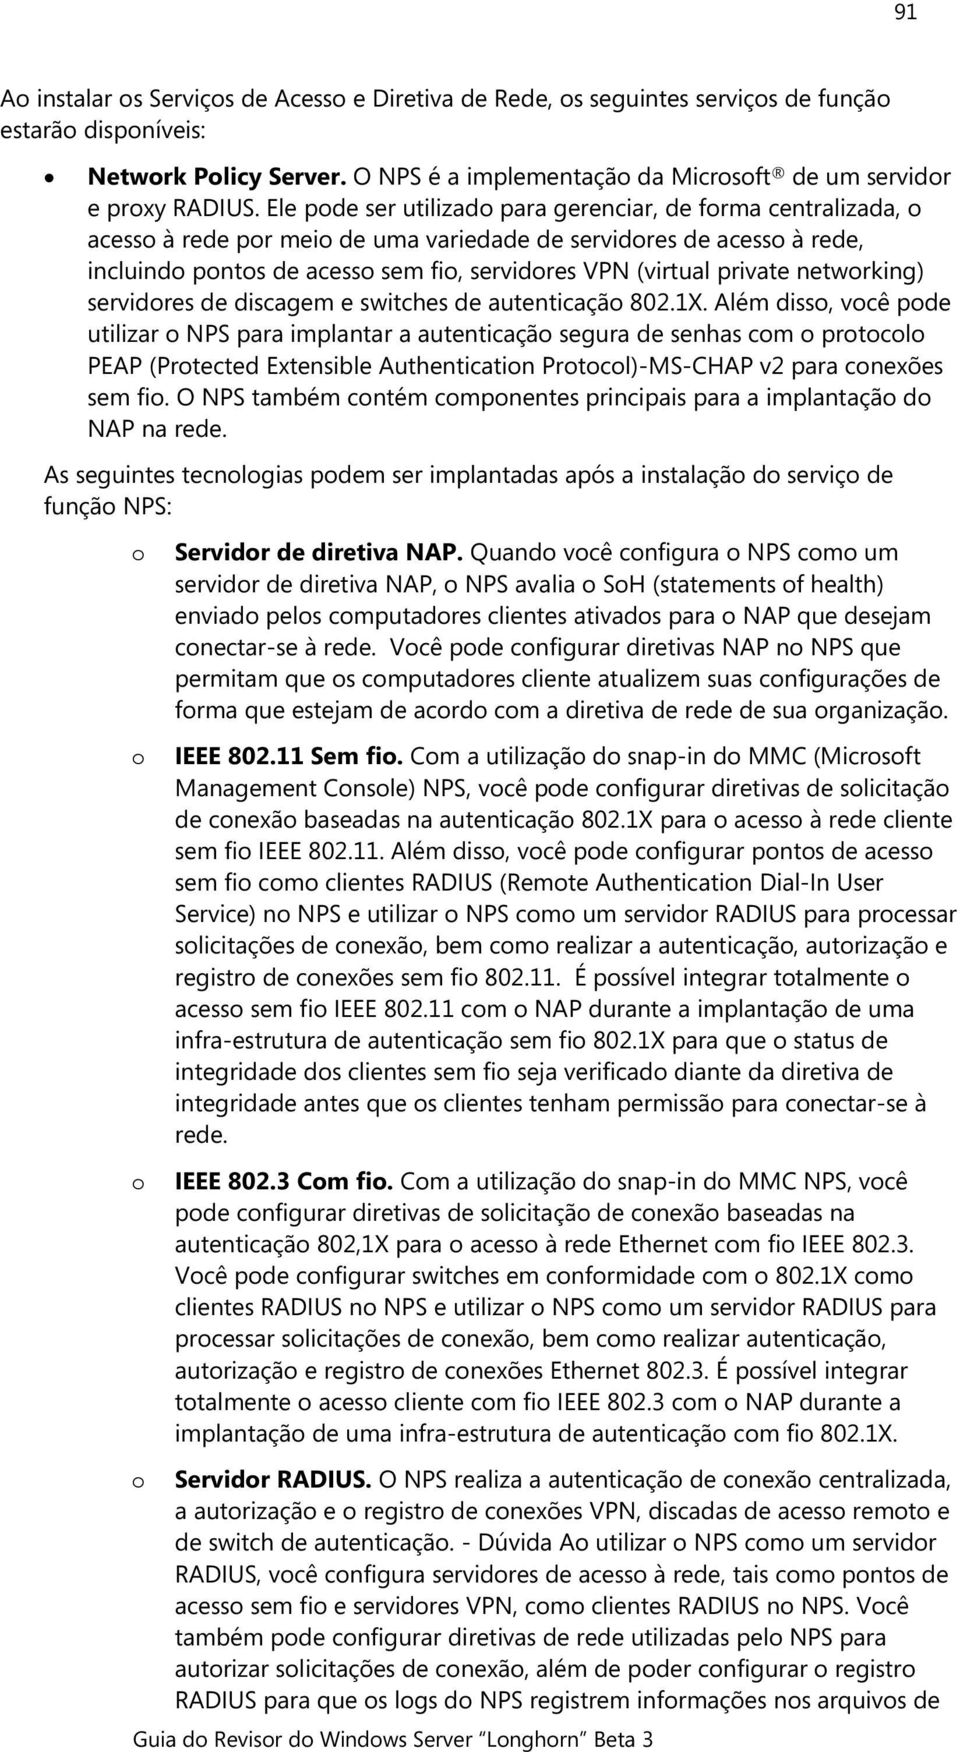 private networking) servidores de discagem e switches de autenticação 802.1X.